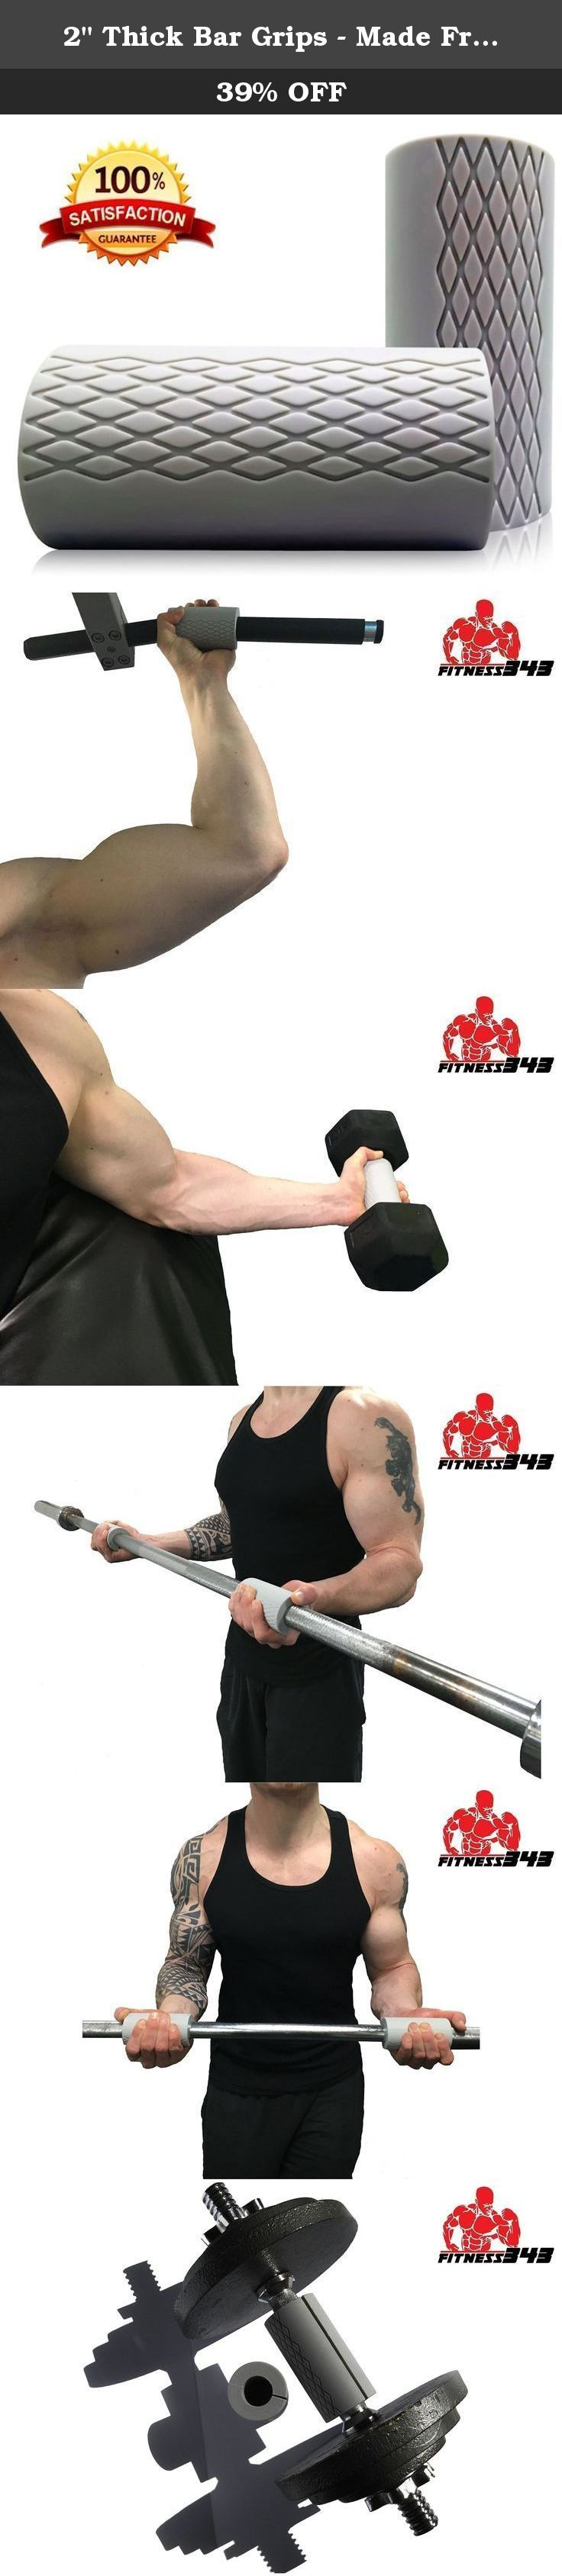 "2"" Thick Bar Grips - Made From Comfortable and Durable Non-slip Silicone Rubber - Easily Attachable to Any Bar - High Quality Manufactured - Will Last a Lifetime Guaranteed - 100% Fully Refundable. Use bar grips to rapidly increase forearm and bicep size and strength. Due to the 2 inch wider grip each repetition will target more muscle fibres in the arm making every workout more efficient at building muscle mass. Wider bars also reduce injury from high intensity workouts and reduce hand…"